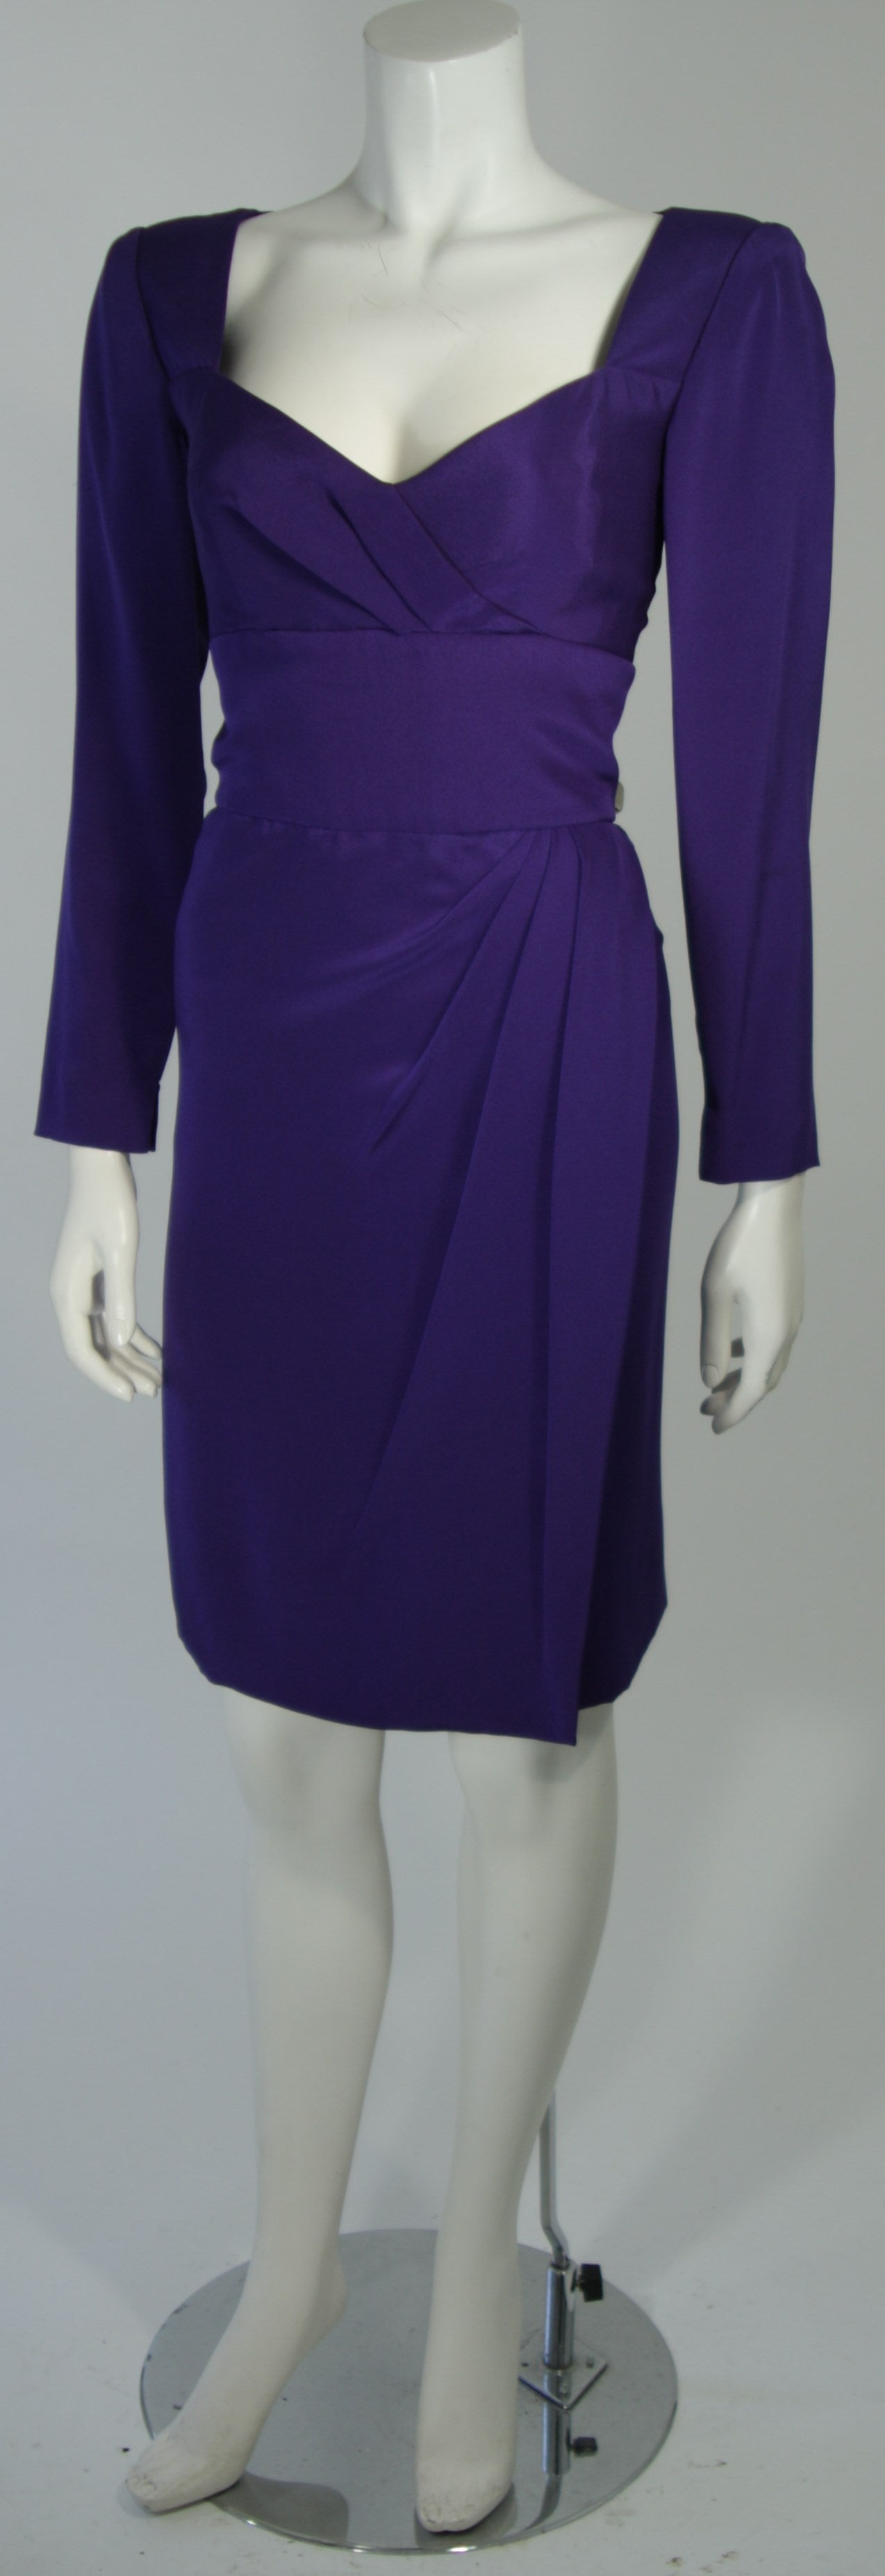 Women's Travilla Purple Silk Long Sleeve Cocktail Dress with Draping Size 8 For Sale